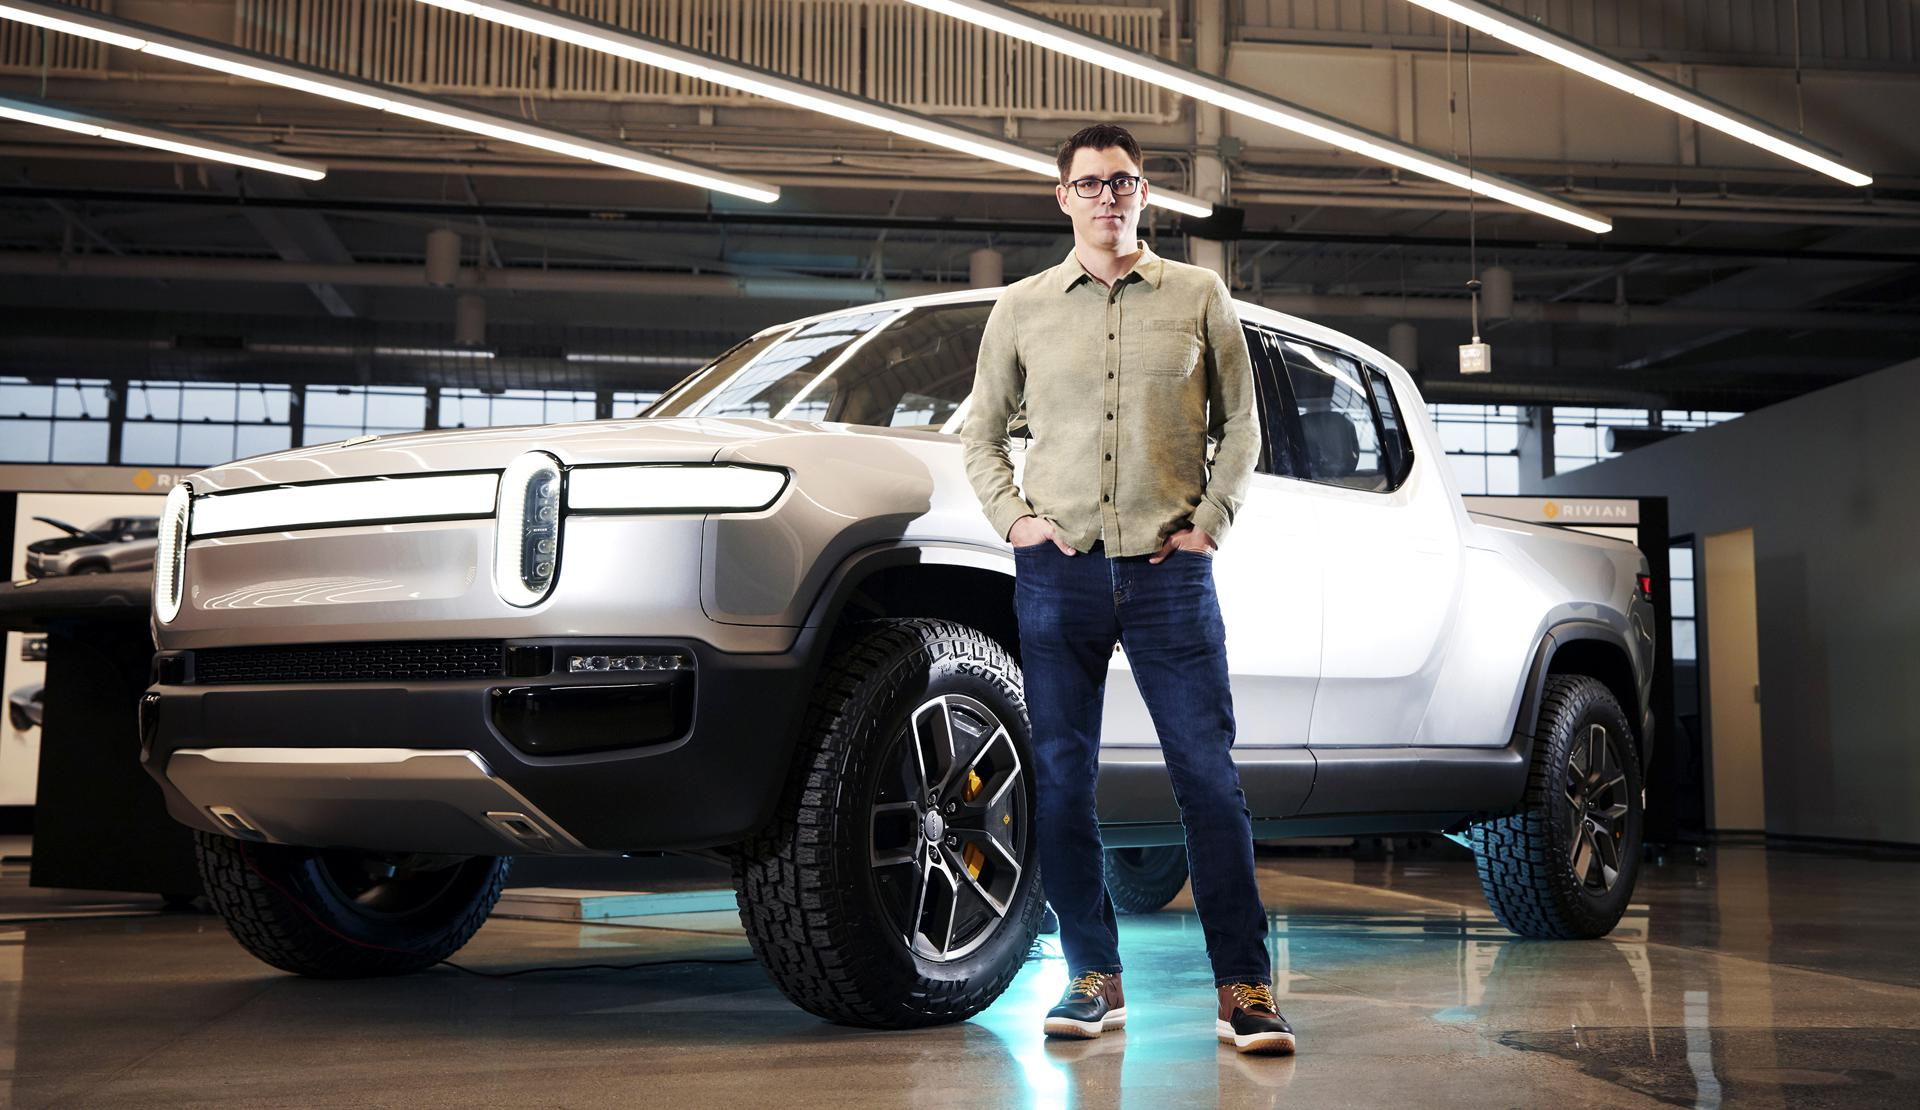 Elon Musk's New Nemesis: Rivian Founder R.J. Scaringe Has A $3 Billion War Chest And Tesla In His Headlights